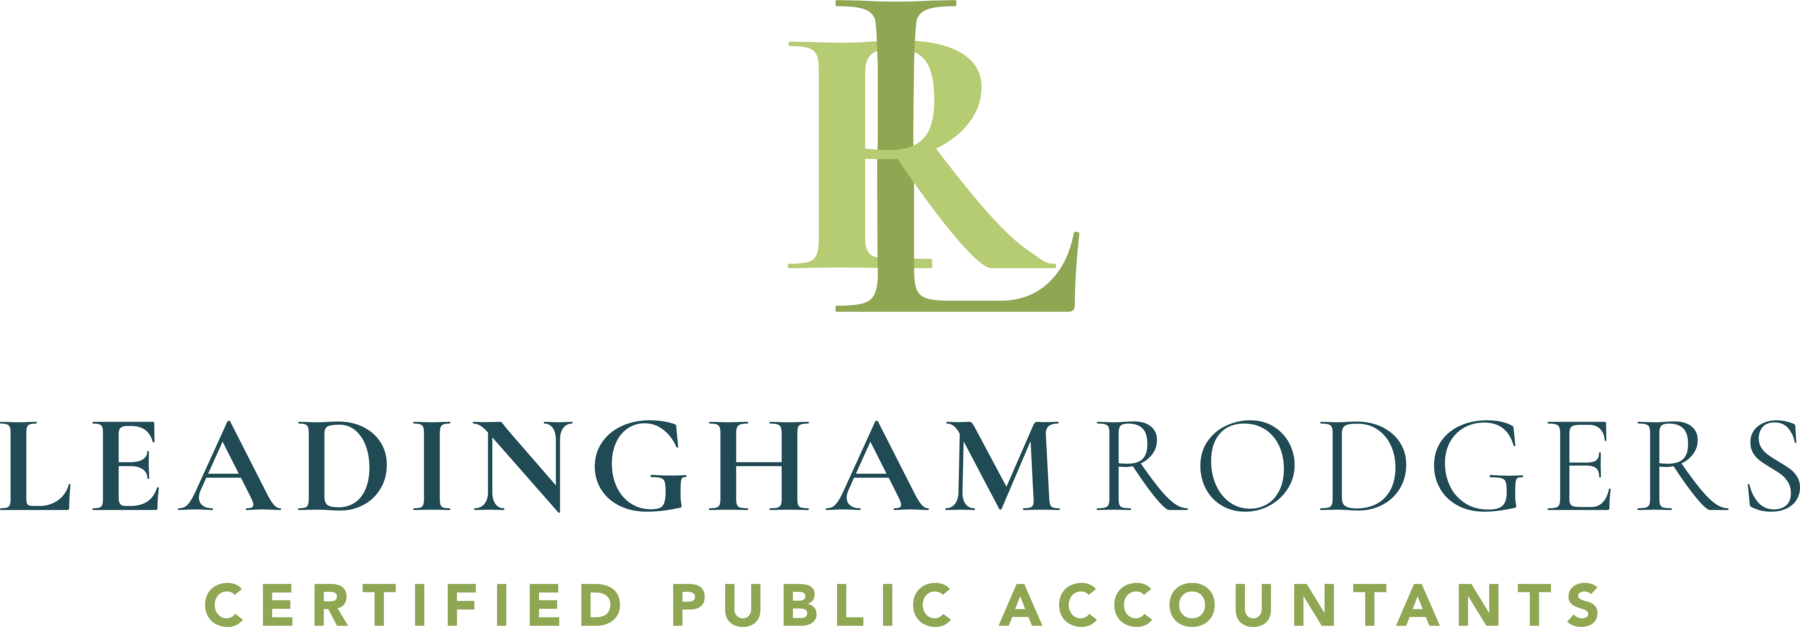 Leadingham Rodgers, CPAs